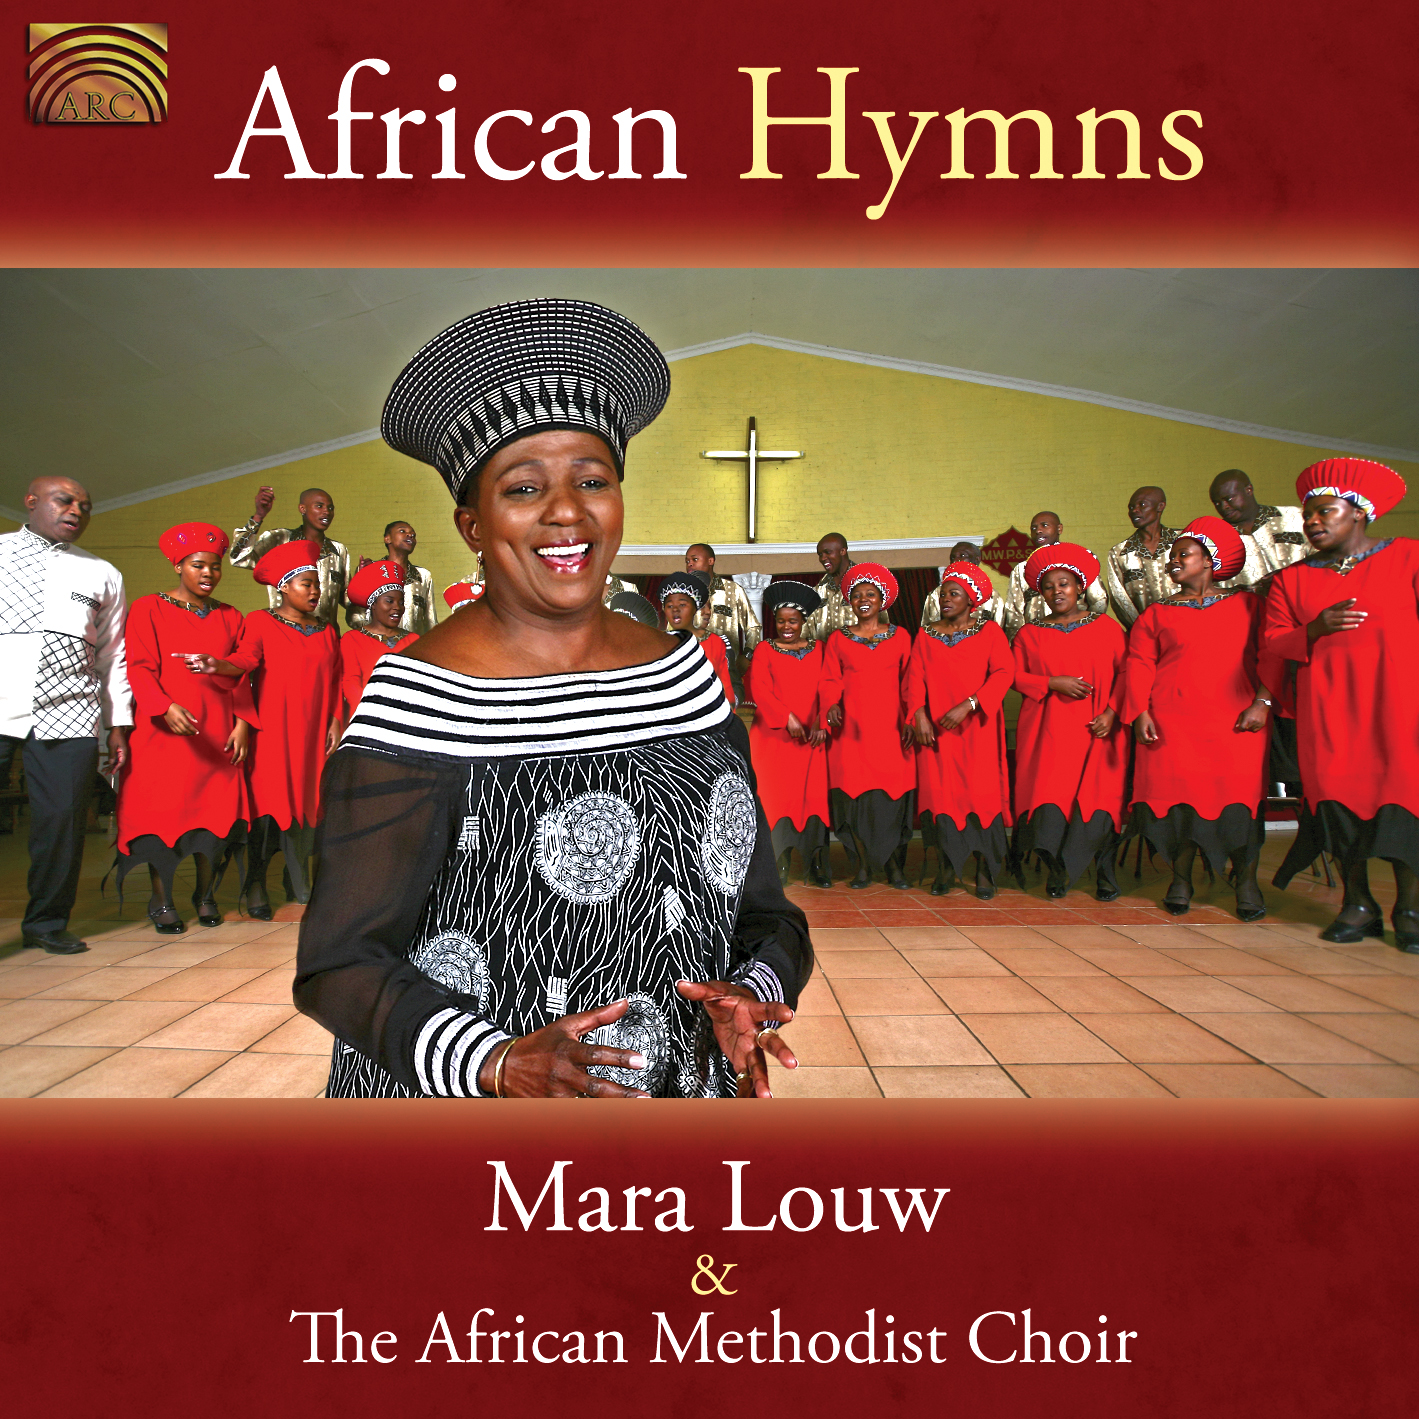 EUCD2249 African Hymns - Mara Louw & The African Method